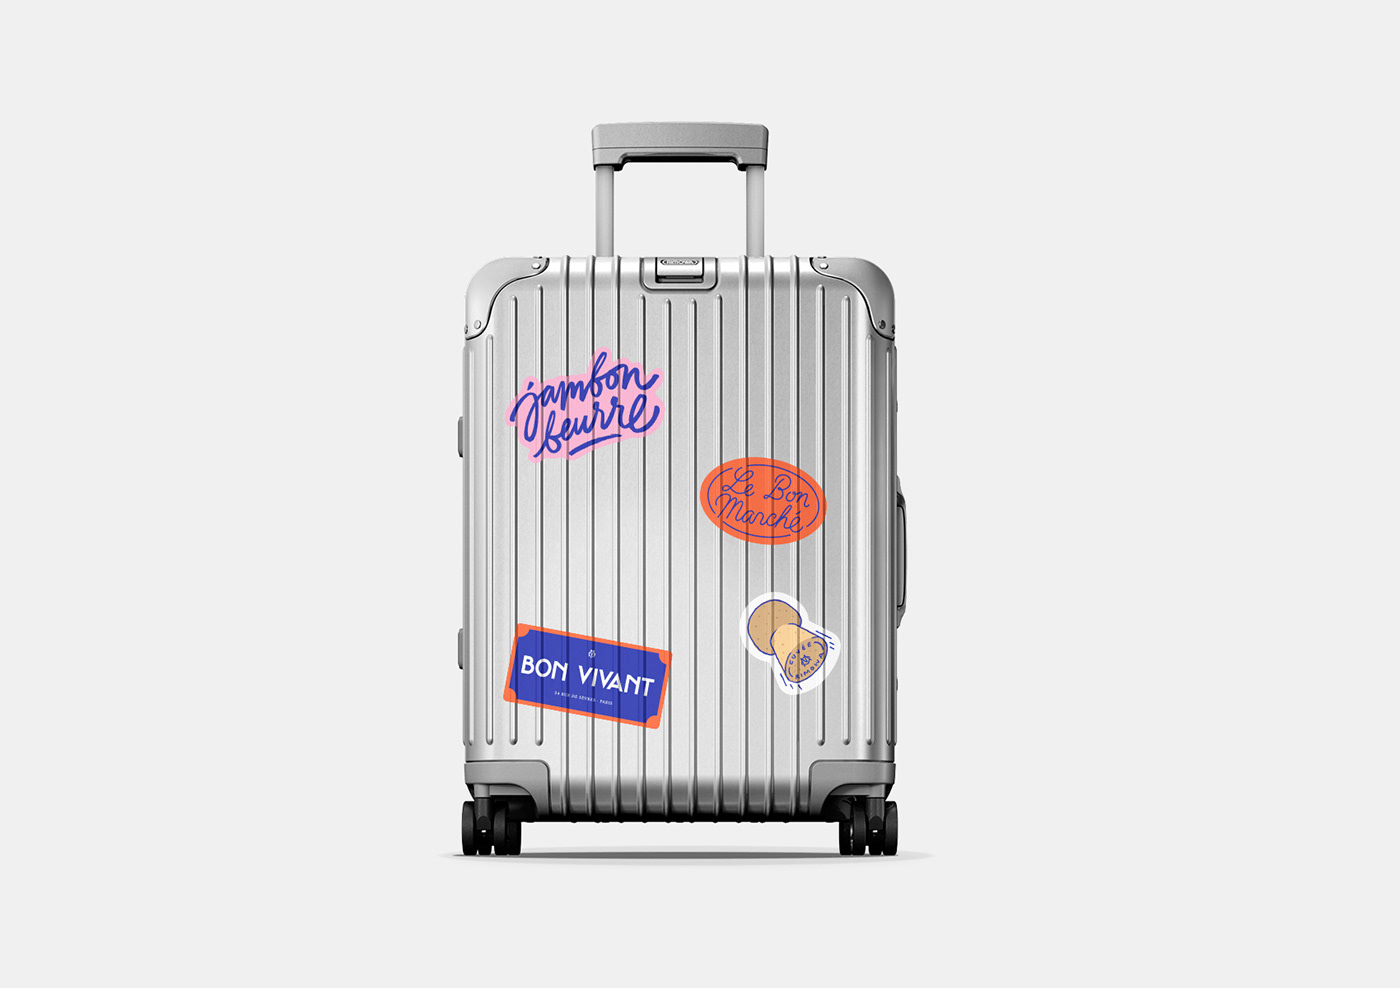 graphic design  identity ILLUSTRATION  lettering luggage rimowa  stickers typography